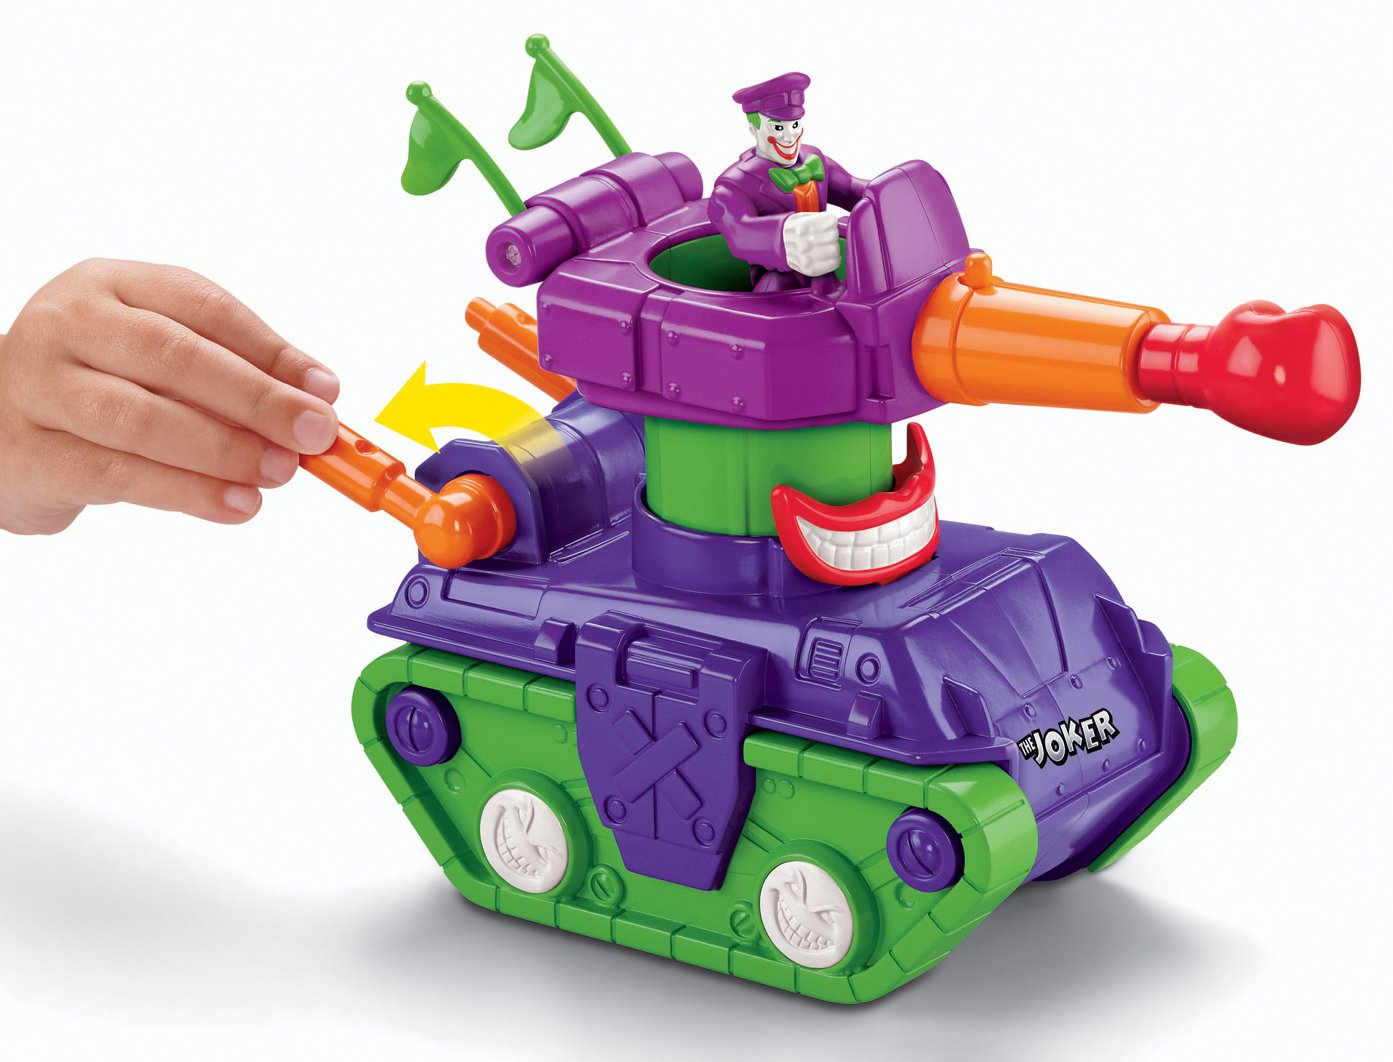 Fisher-Price Imaginext DC Super Friends, Joker Tank by Fisher-Price (Image #4)